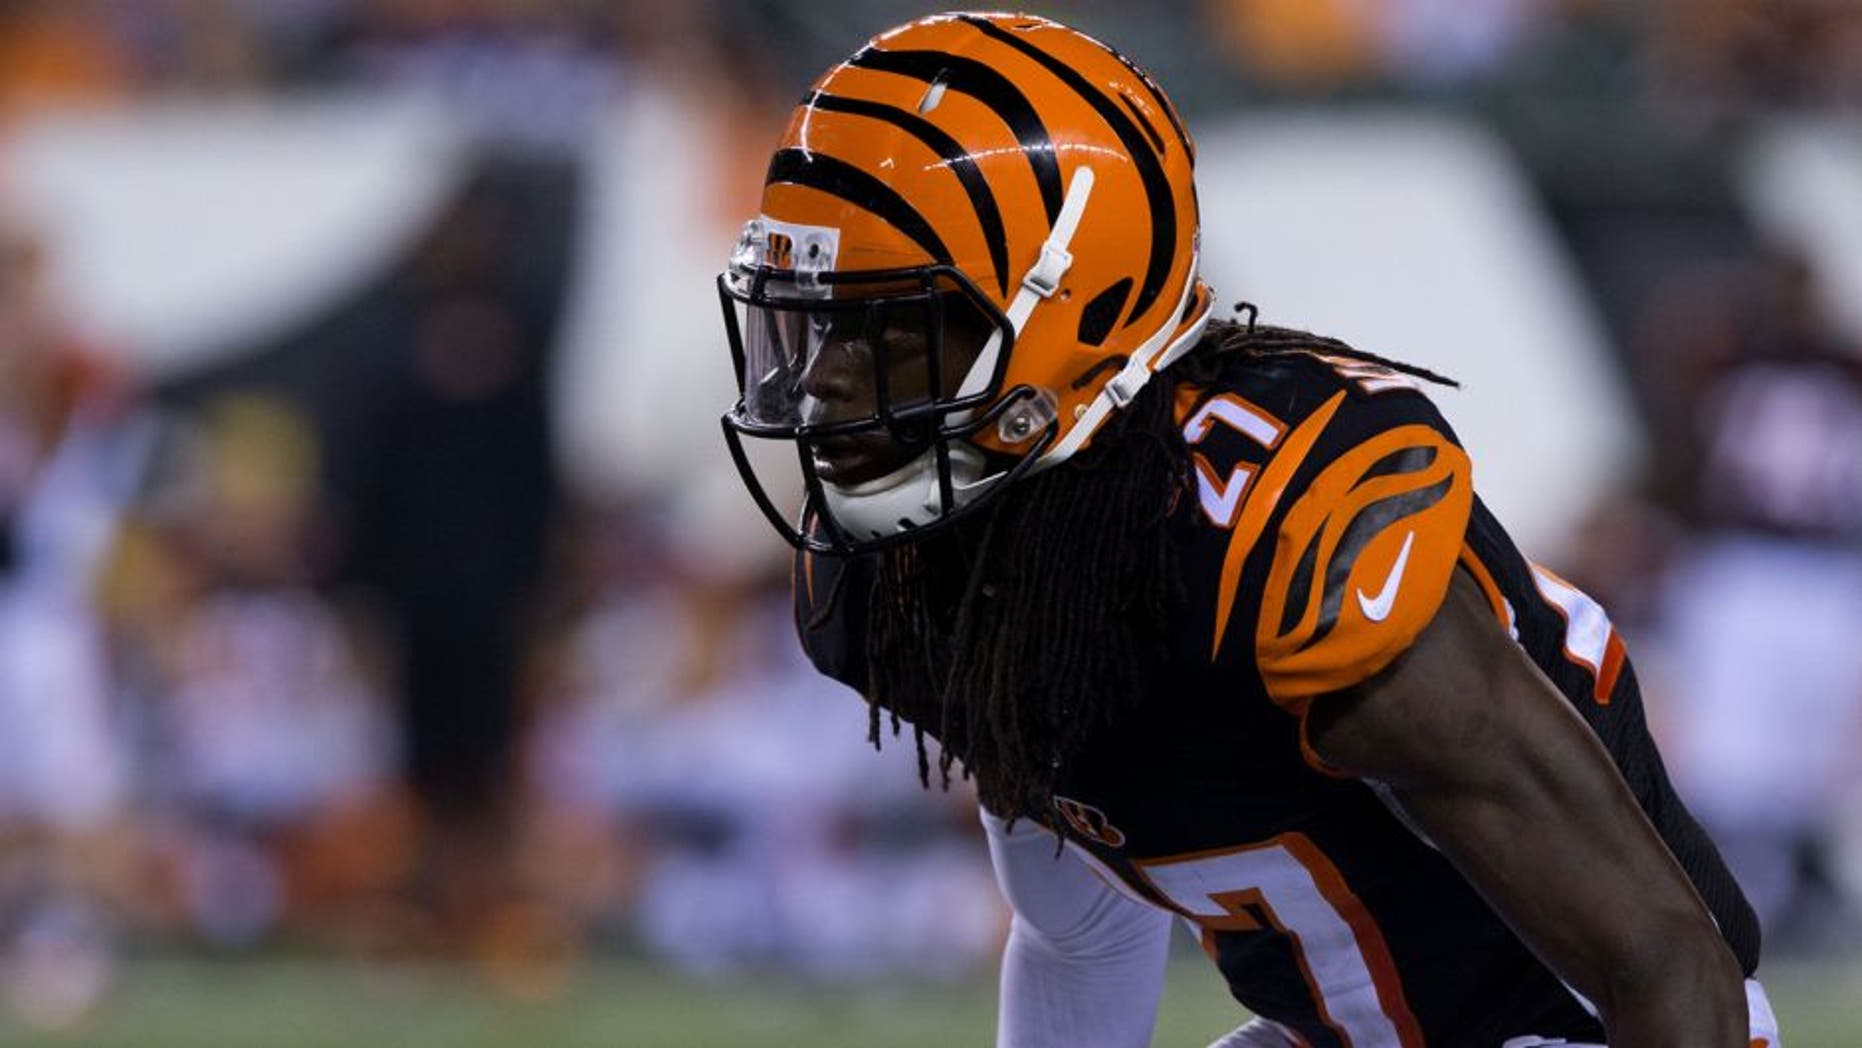 Aug 28, 2014; Cincinnati, OH, USA; Cincinnati Bengals cornerback Dre Kirkpatrick (27) against the Indianapolis Colts at Paul Brown Stadium. The Cincinnati Bengals won 35-7. Mandatory Credit: Aaron Doster-USA TODAY Sports